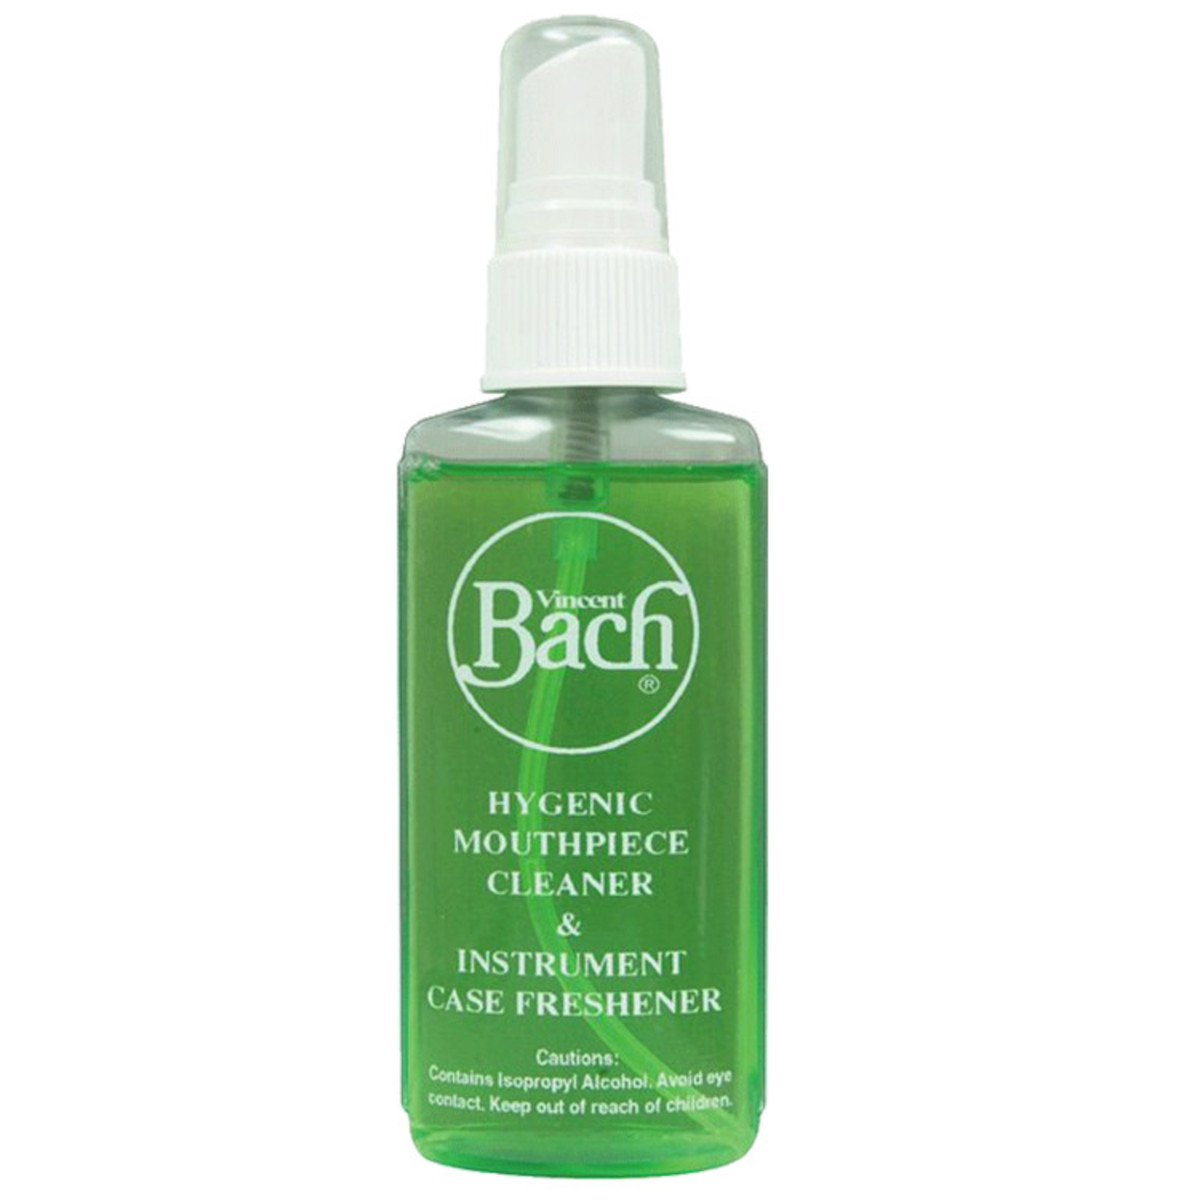 Image of Bach Mouthpiece Disinfectant Spray